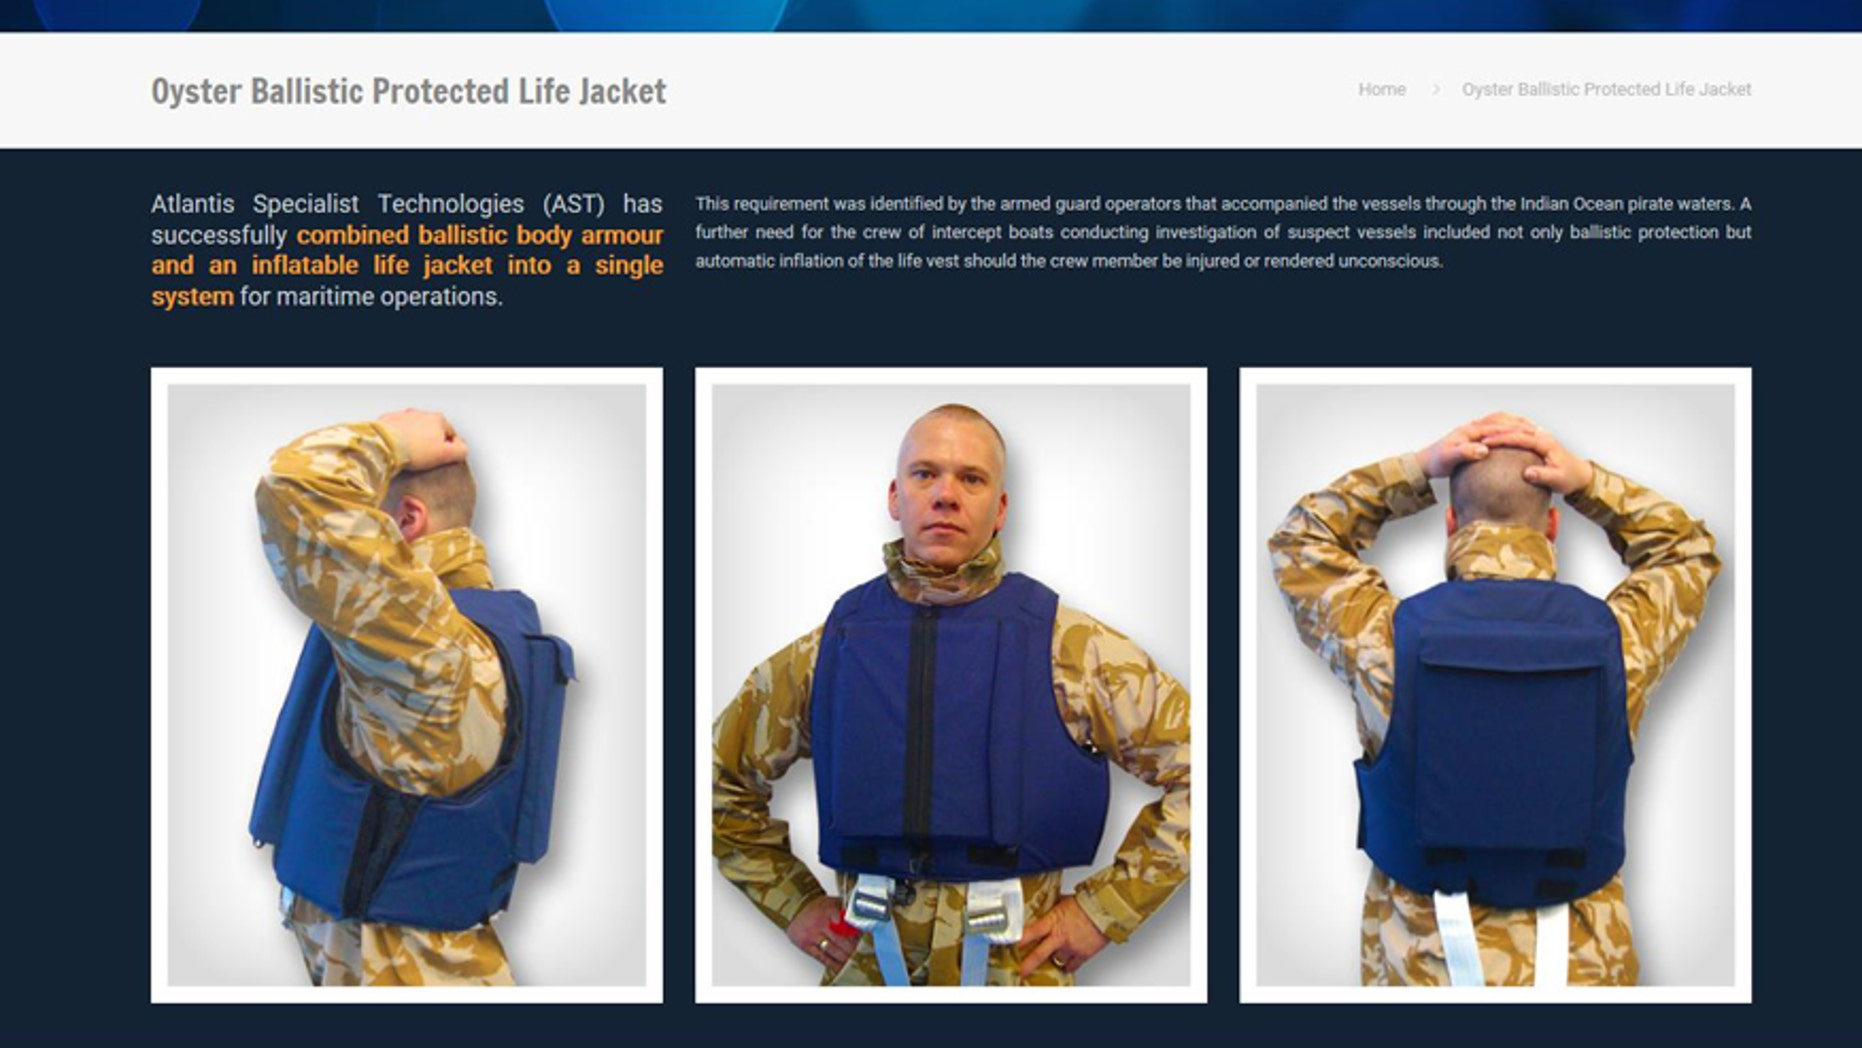 (Oyster Ballistic Projected Life Jacket screenshot from http://atlantiscorp.co.za)